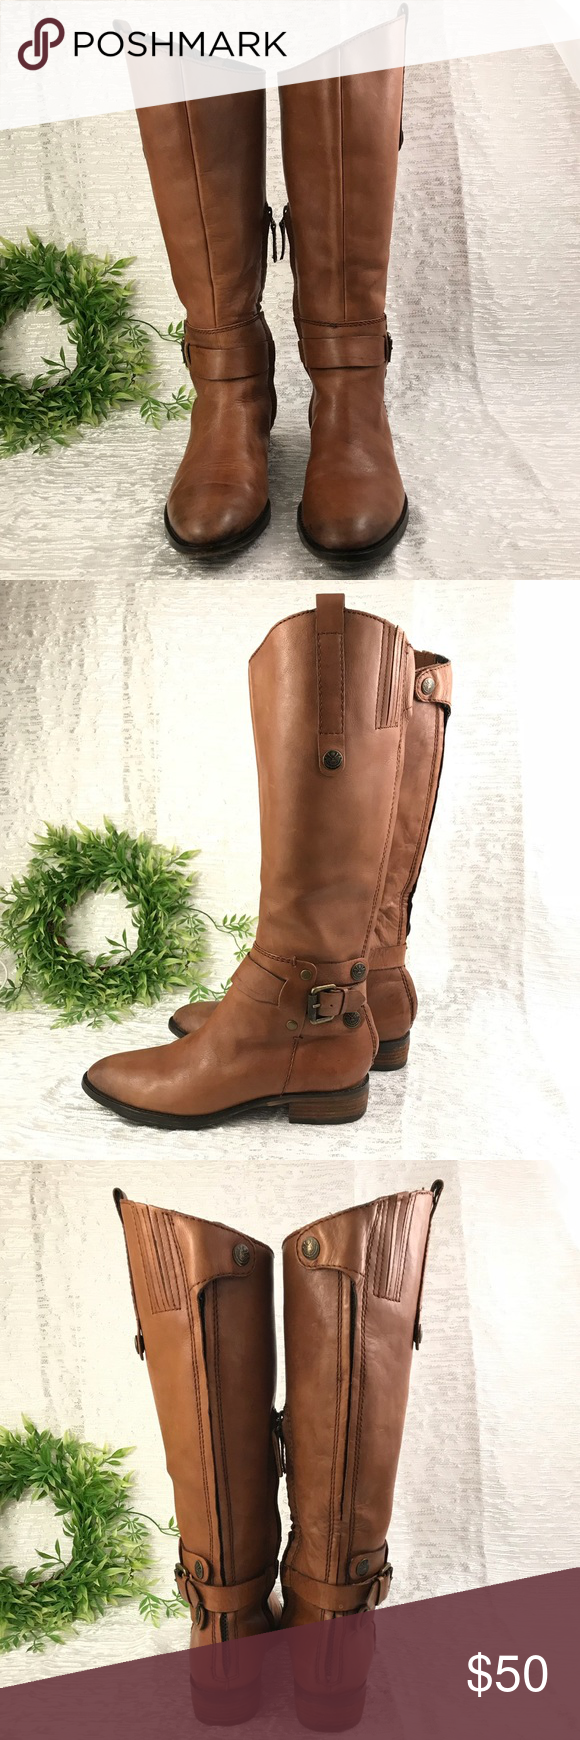 """7cbb735e5cbdf SAM EDELMAN talk brown leather women boots 6.5 Excellent used condition  Calf 7"""" Heel 1.12"""" Height 15"""" (heel to top of the boot) Sam Edelman Shoes  Winter ..."""